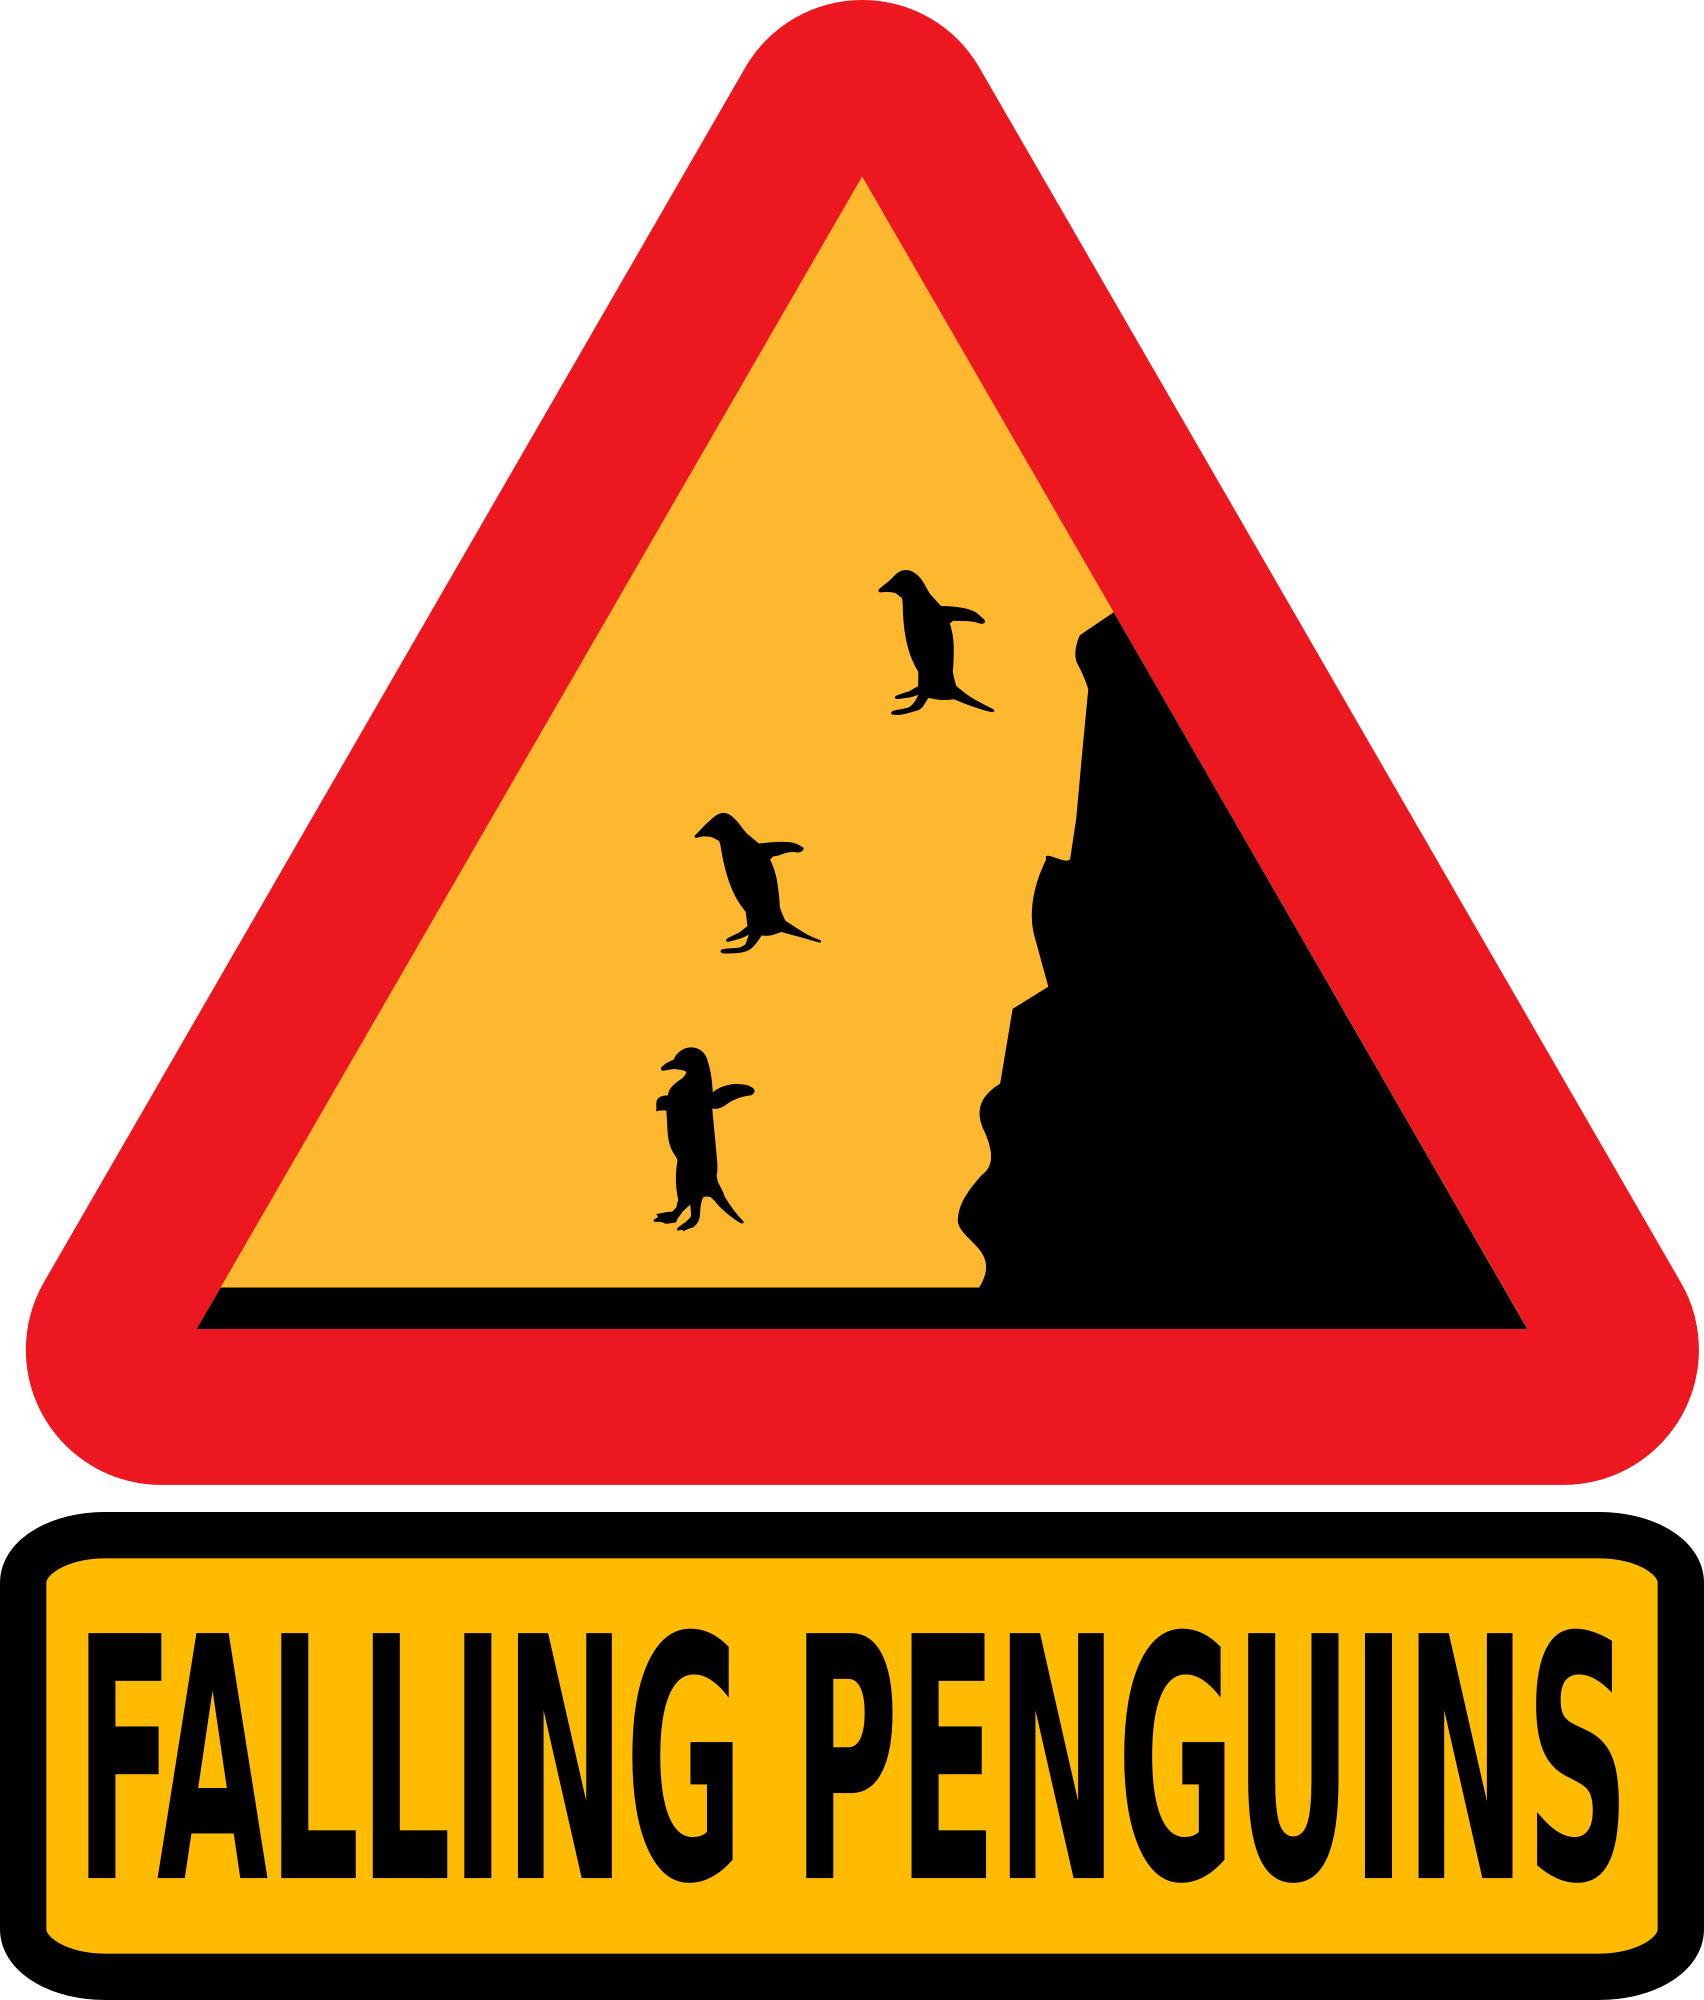 Warning Falling Penguins Clipart png free, Warning Falling Penguins transparent png